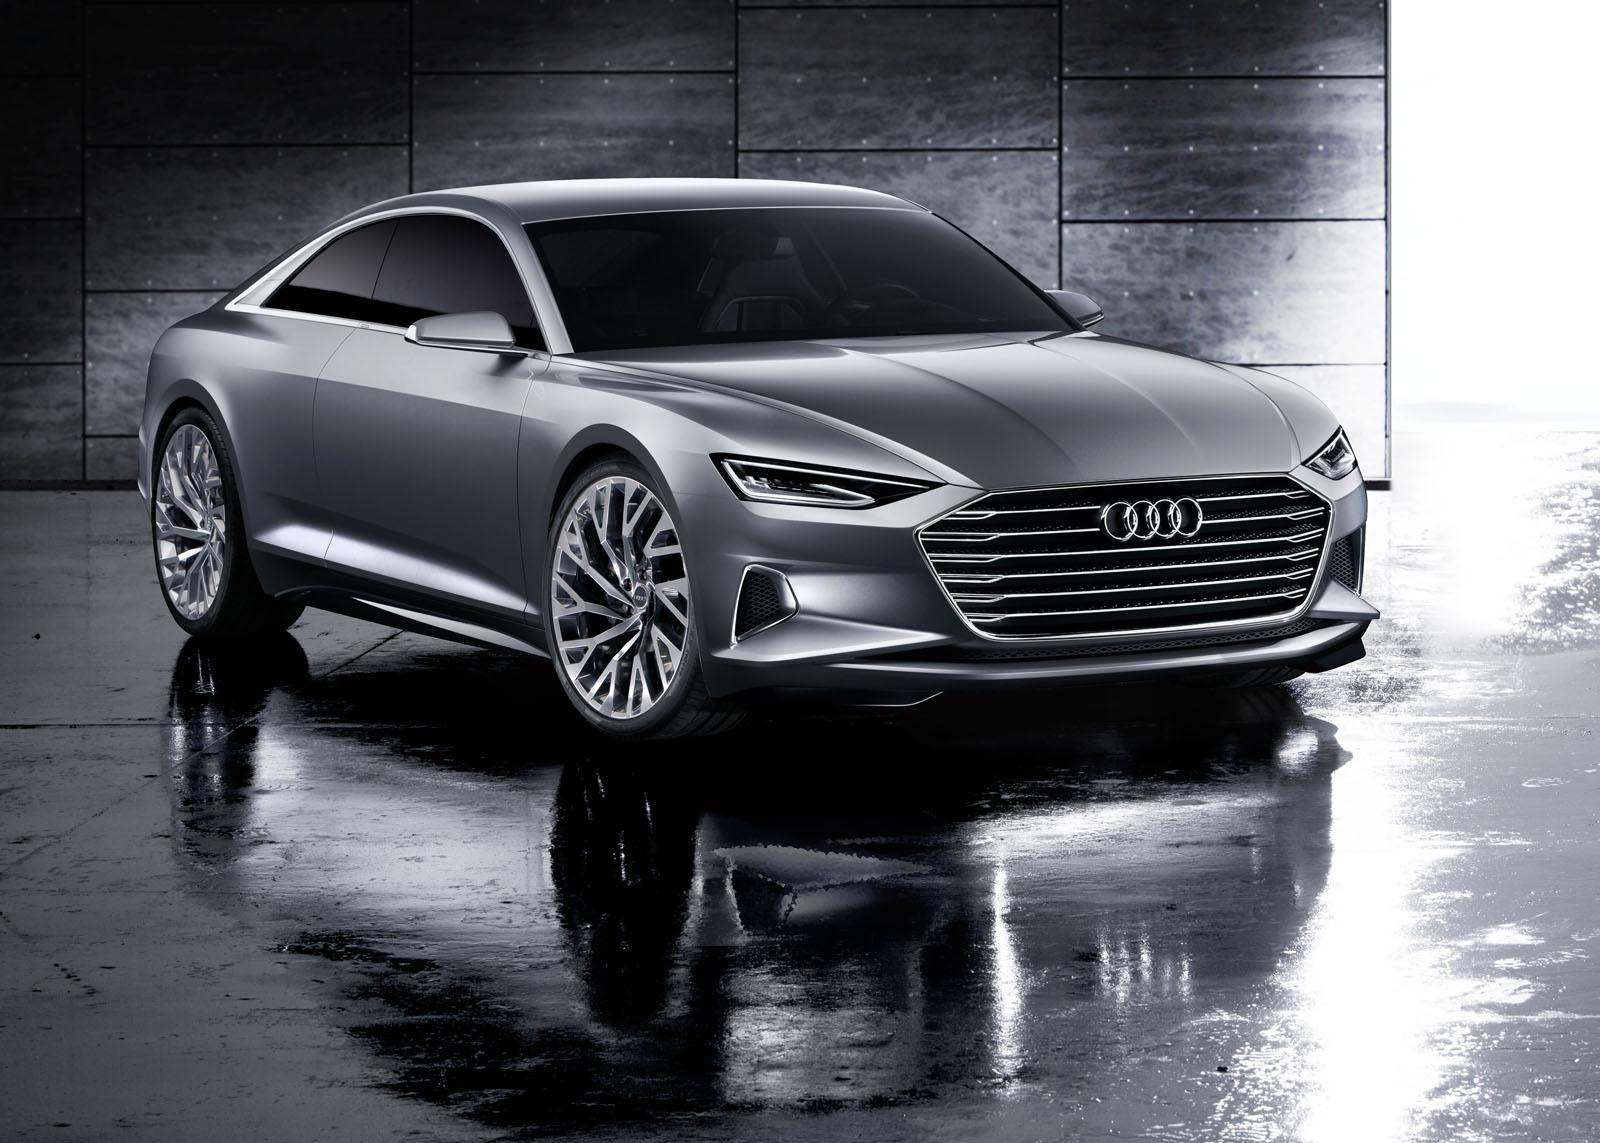 Audi Prologue Concept front quarters